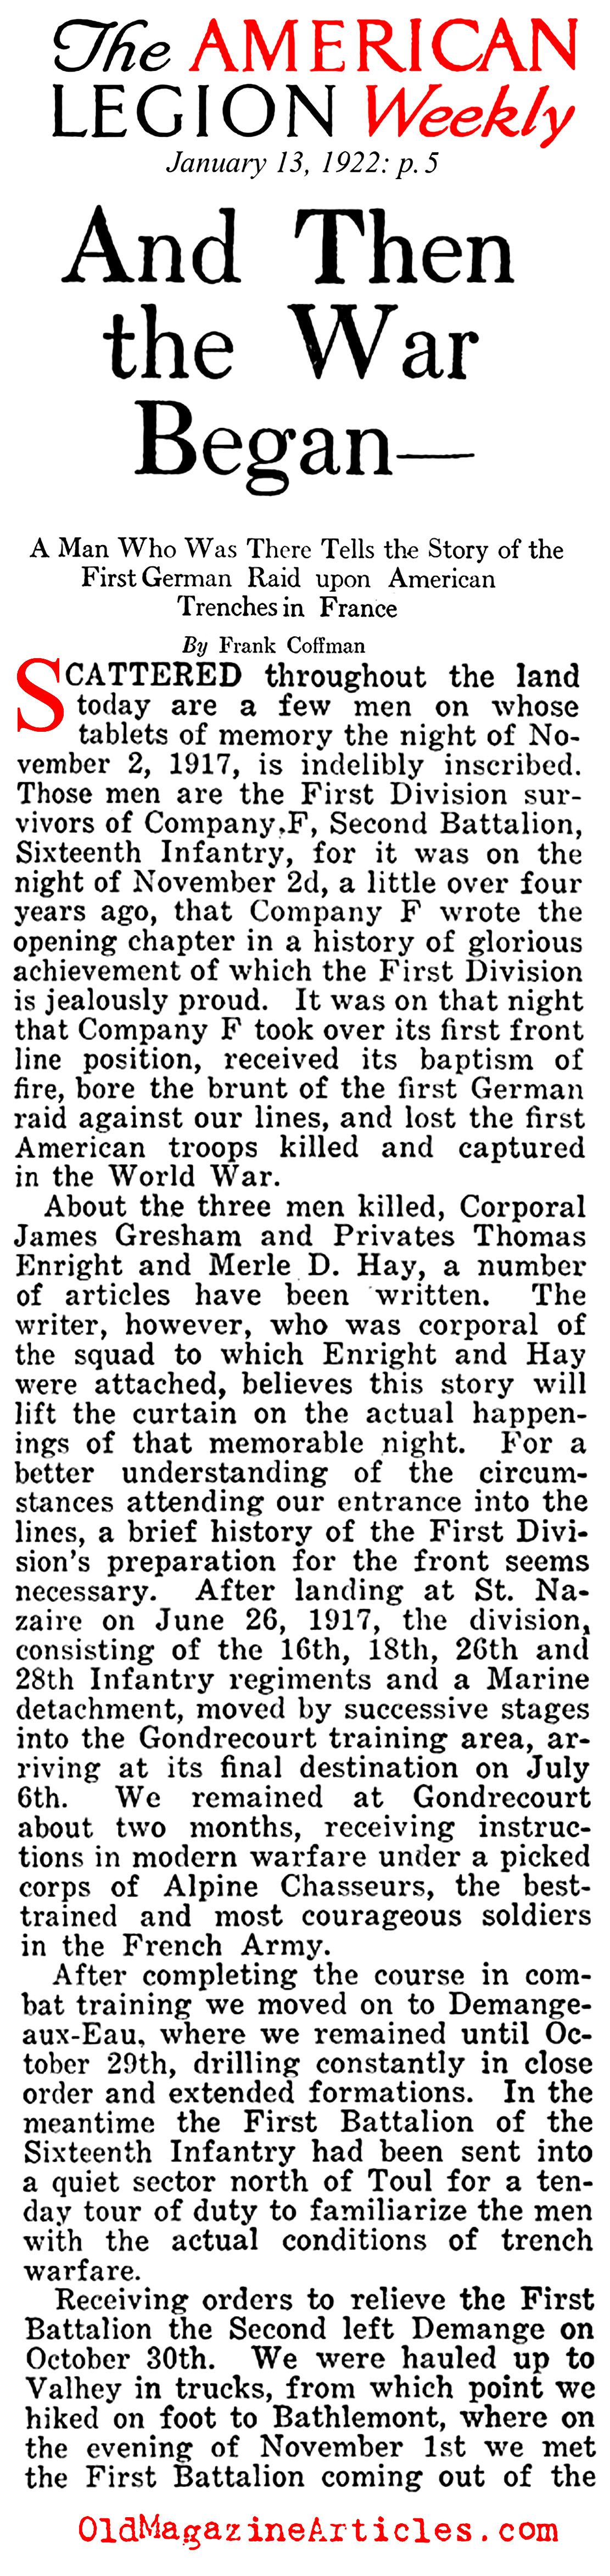 First Blood (American Legion Weekly, 1922)